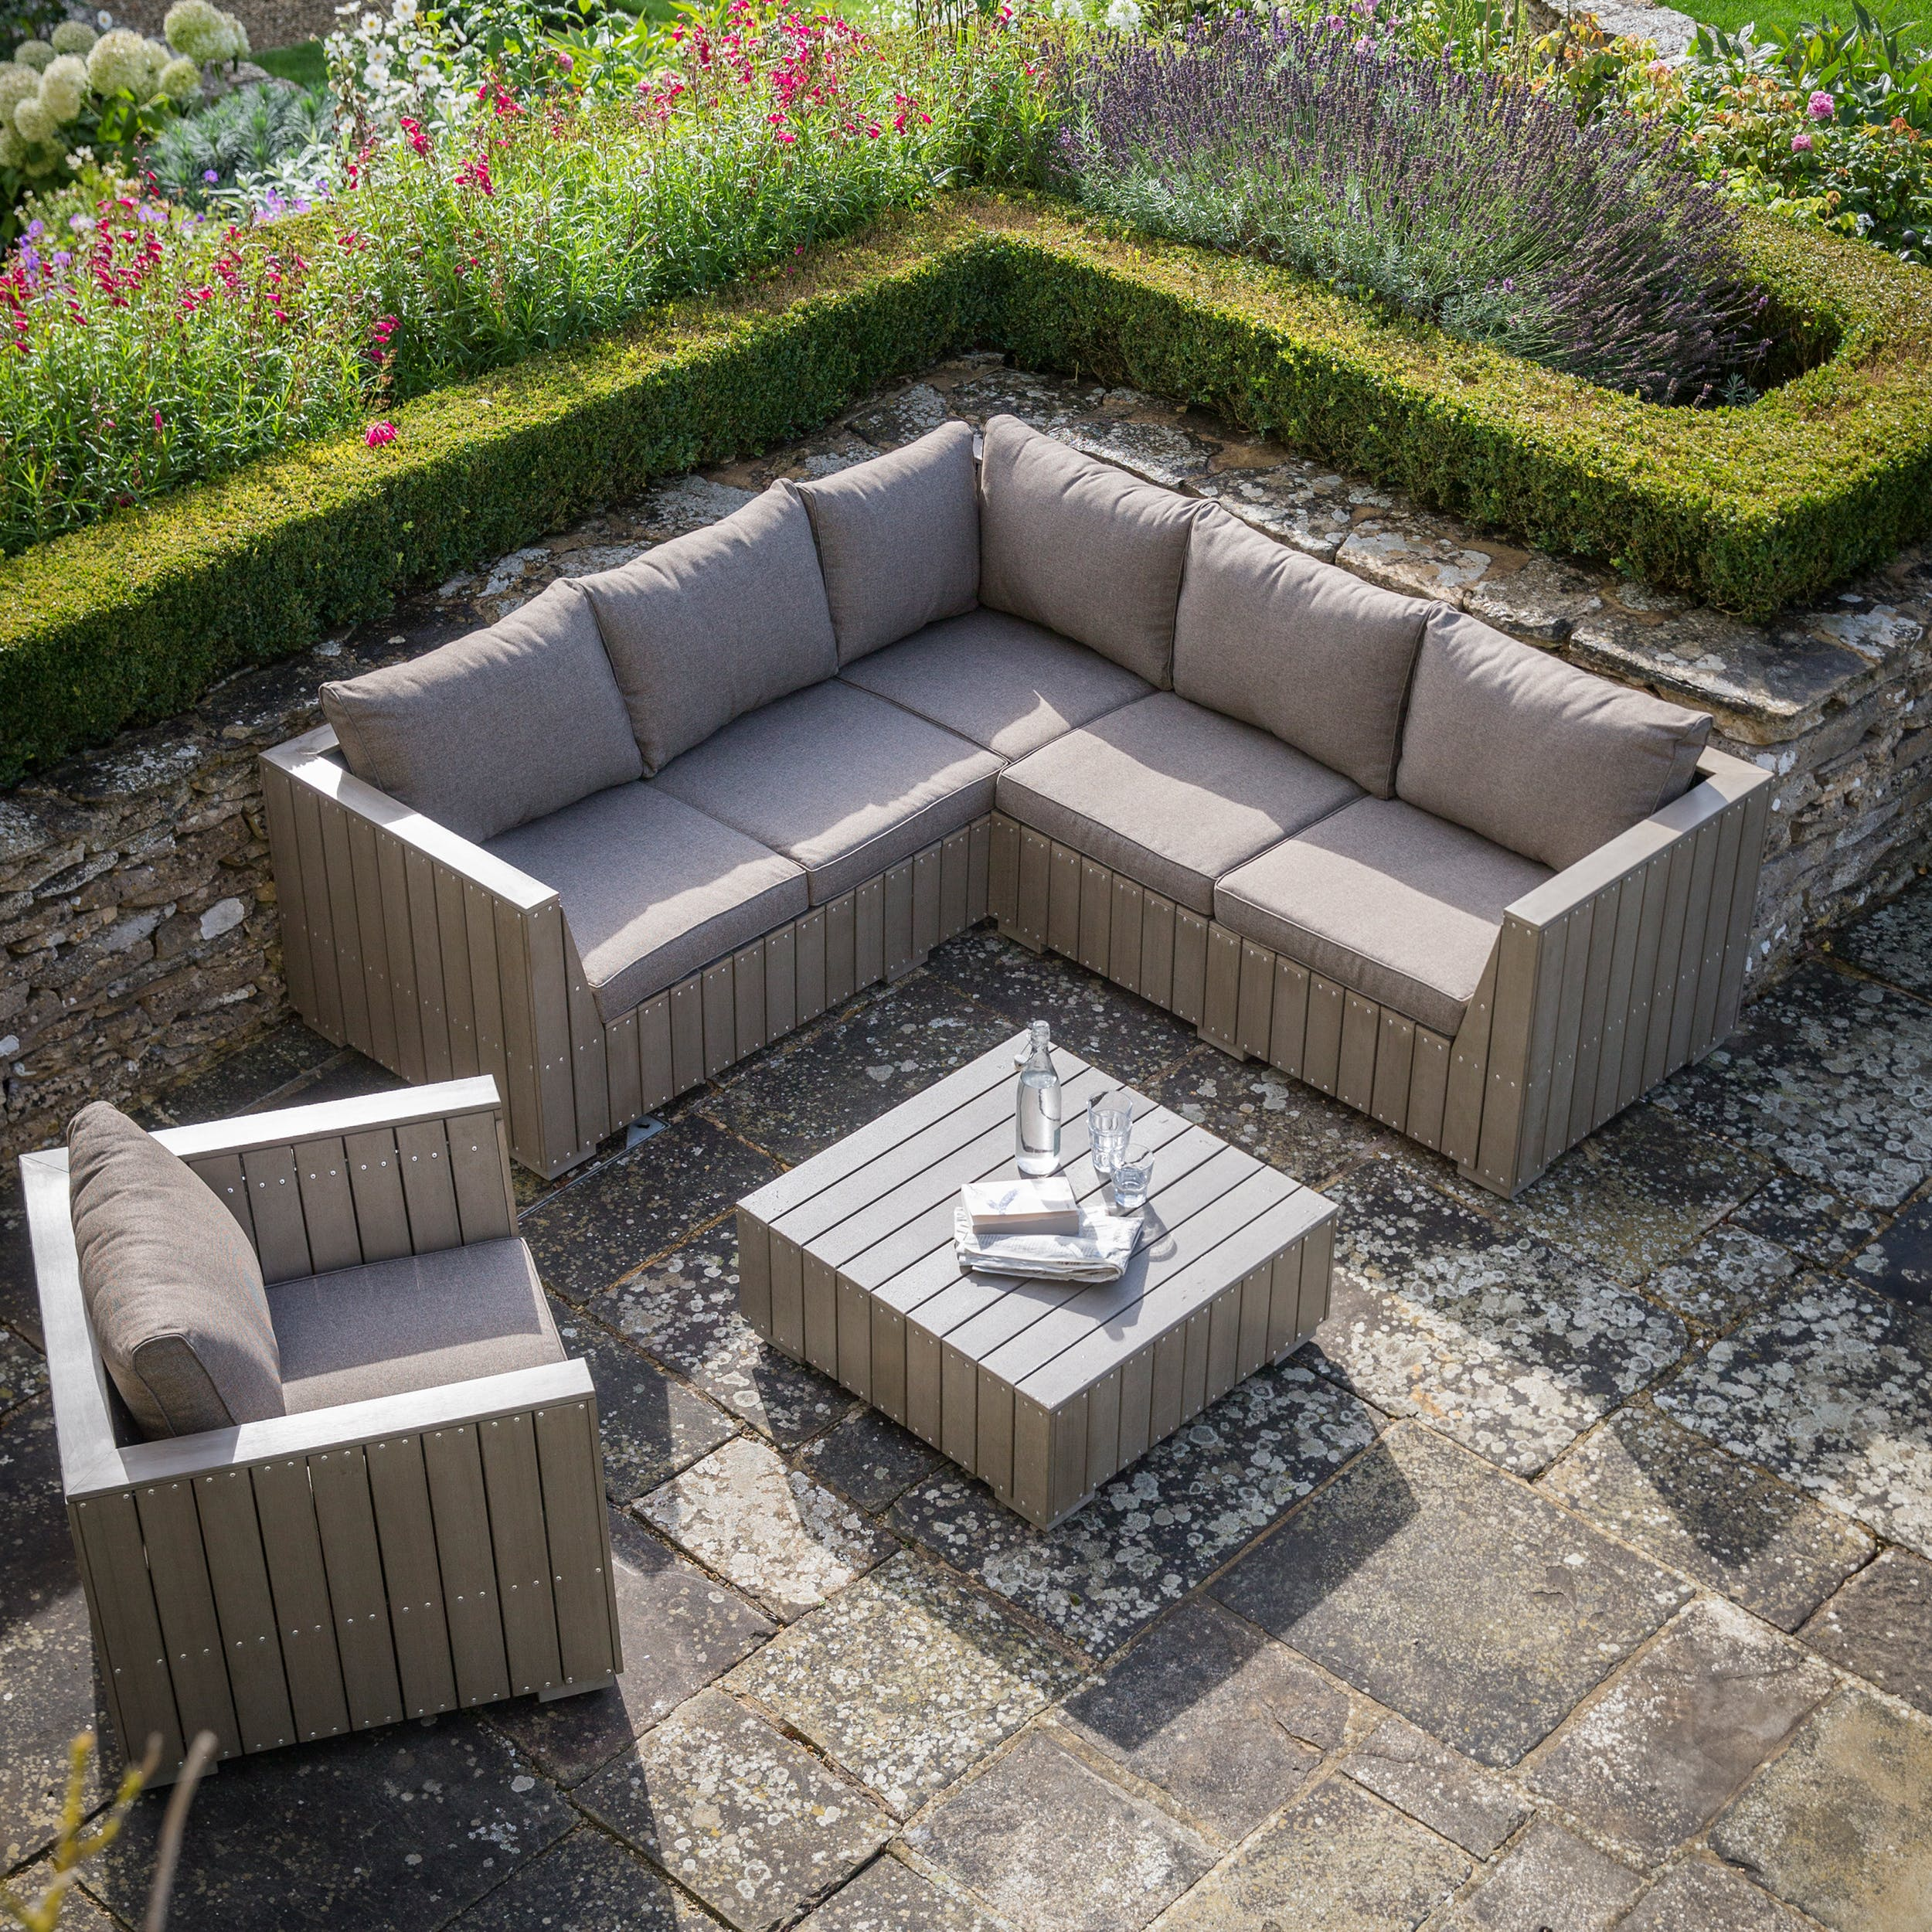 Better Homes And Gardens Replacement Cushions Azalea Ridge, Bosham Outdoor Corner Sofa Set Garden Trading